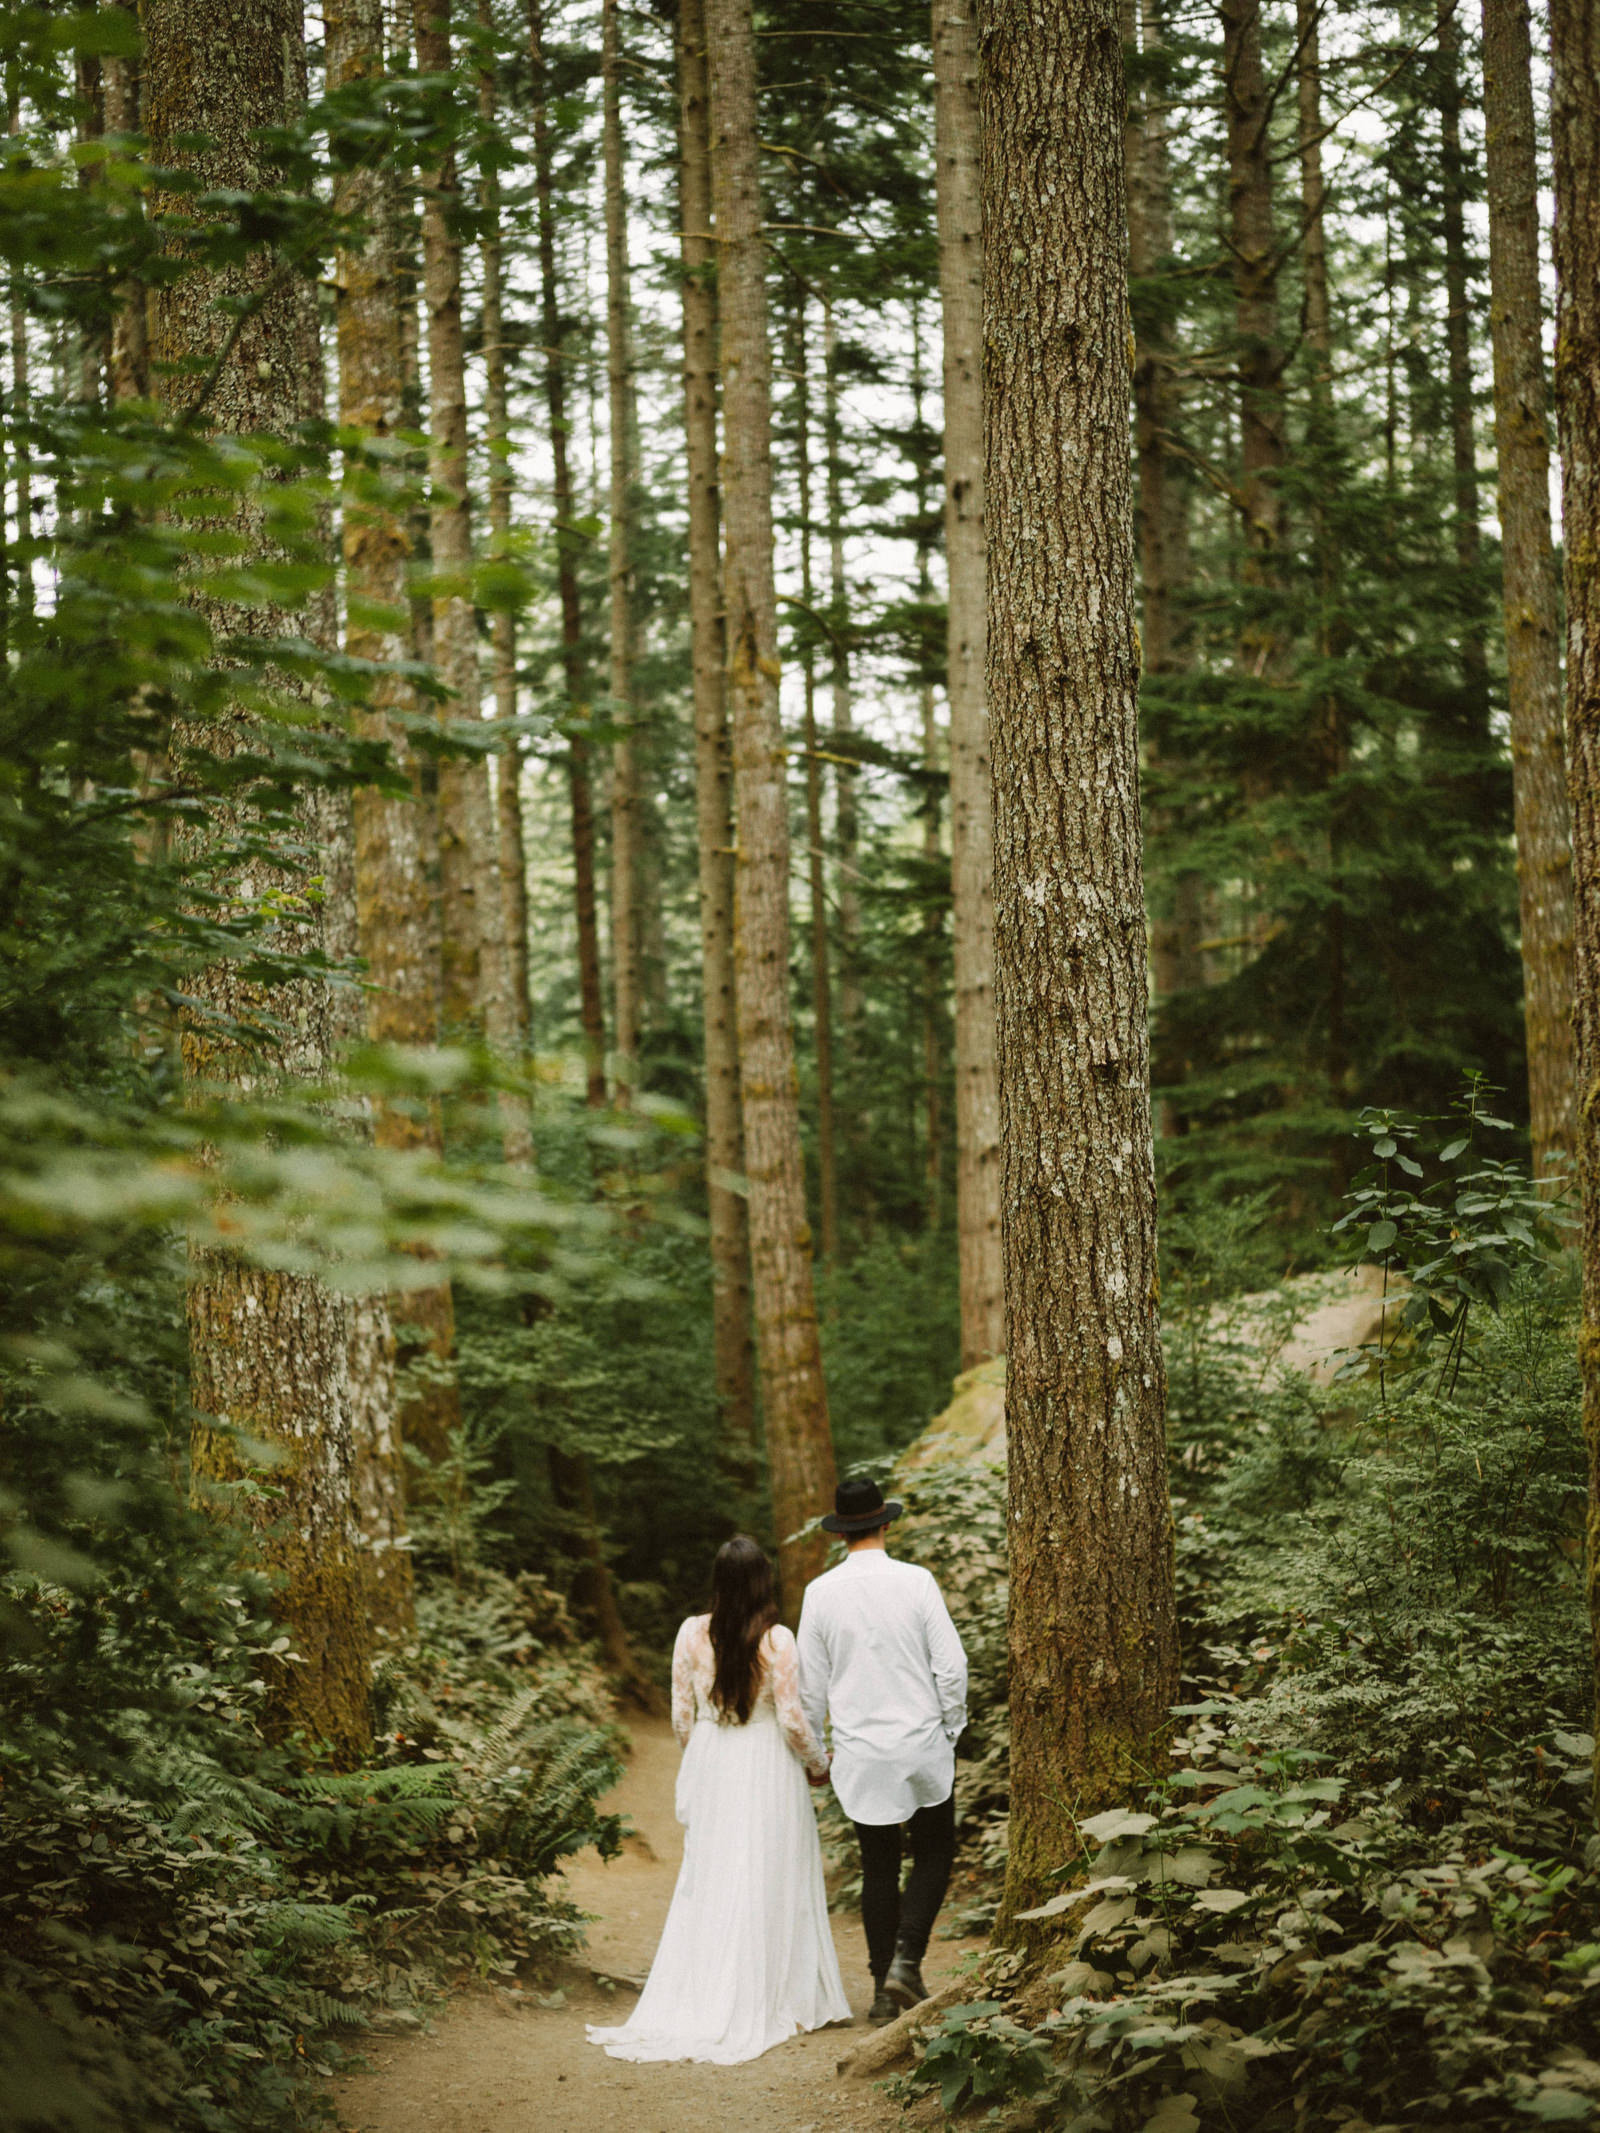 athena-and-camron-seattle-elopement-wedding-benj-haisch-rattlesnake-lake-christian-couple-goals28